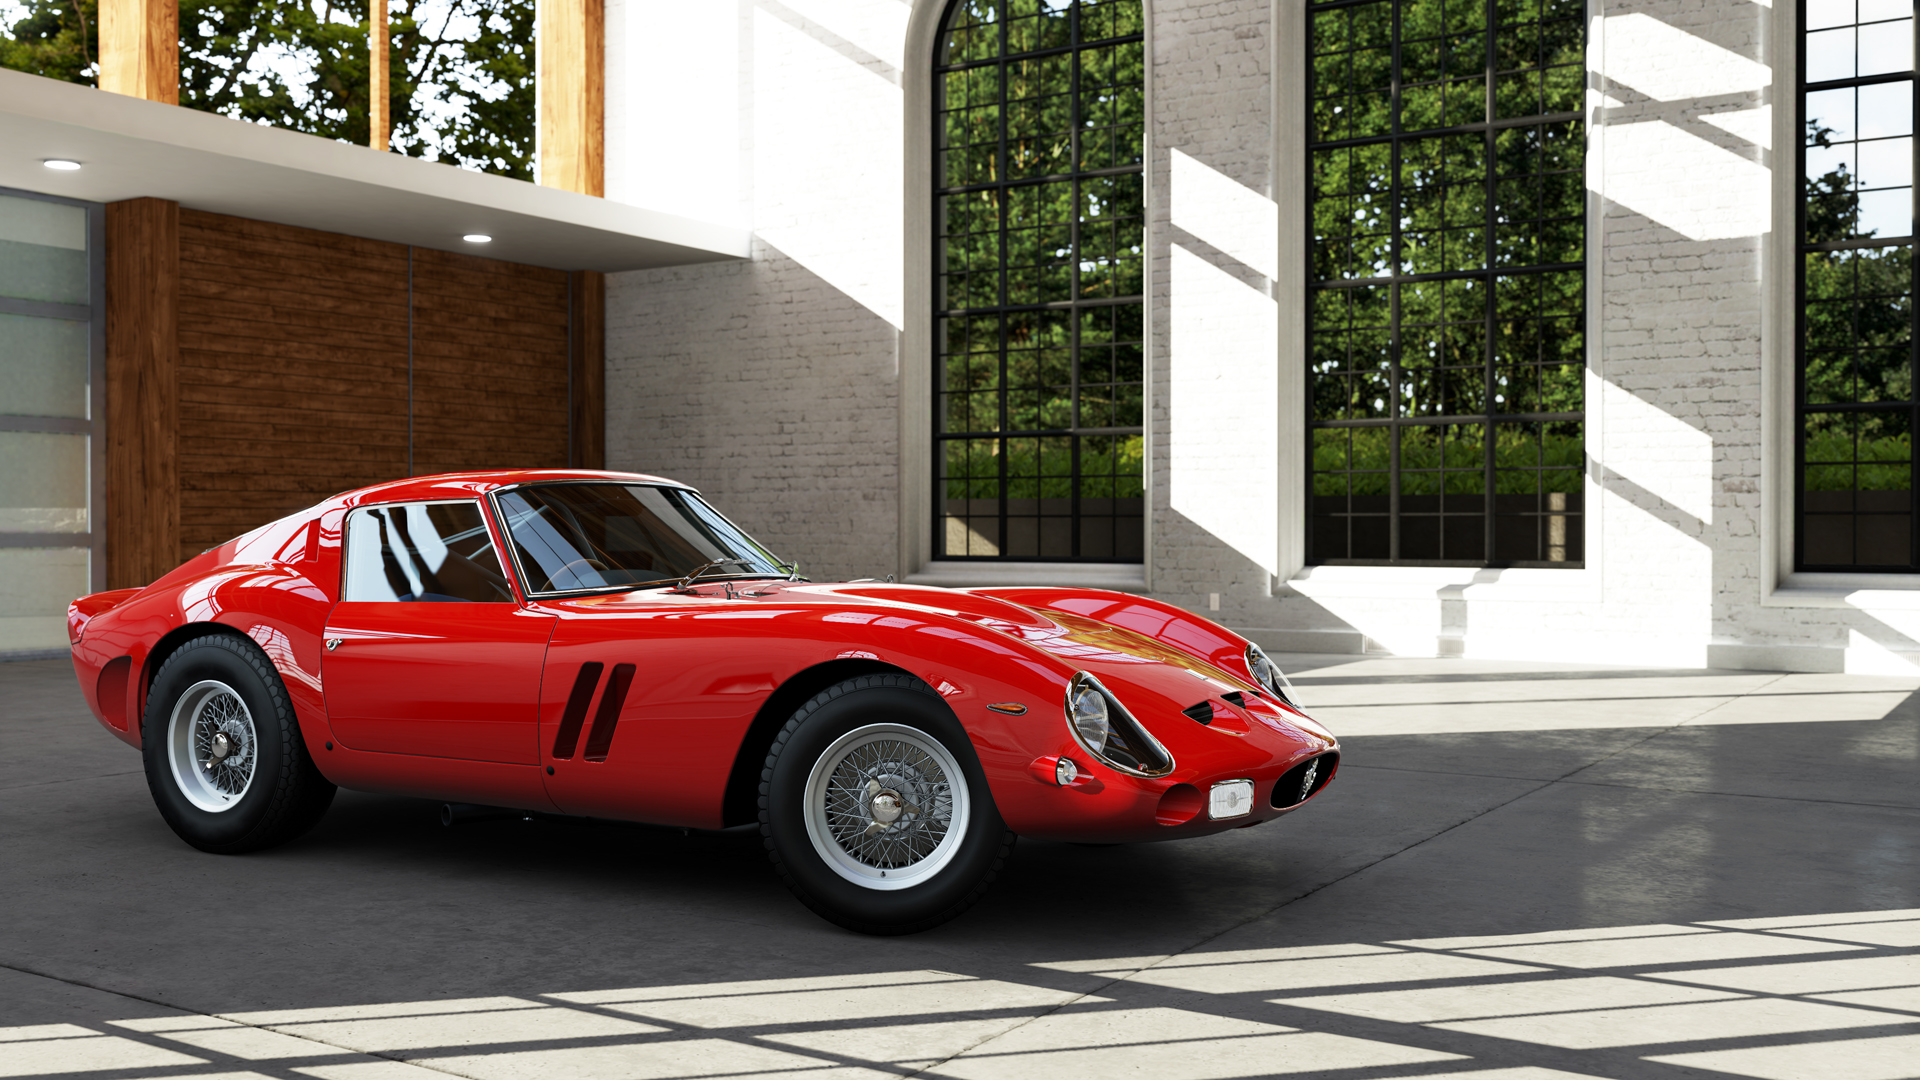 1962, Ferrari, 250 GTO, Rs 306 cr, auction, NewsMobile, Mobile news, Auto, Car, India